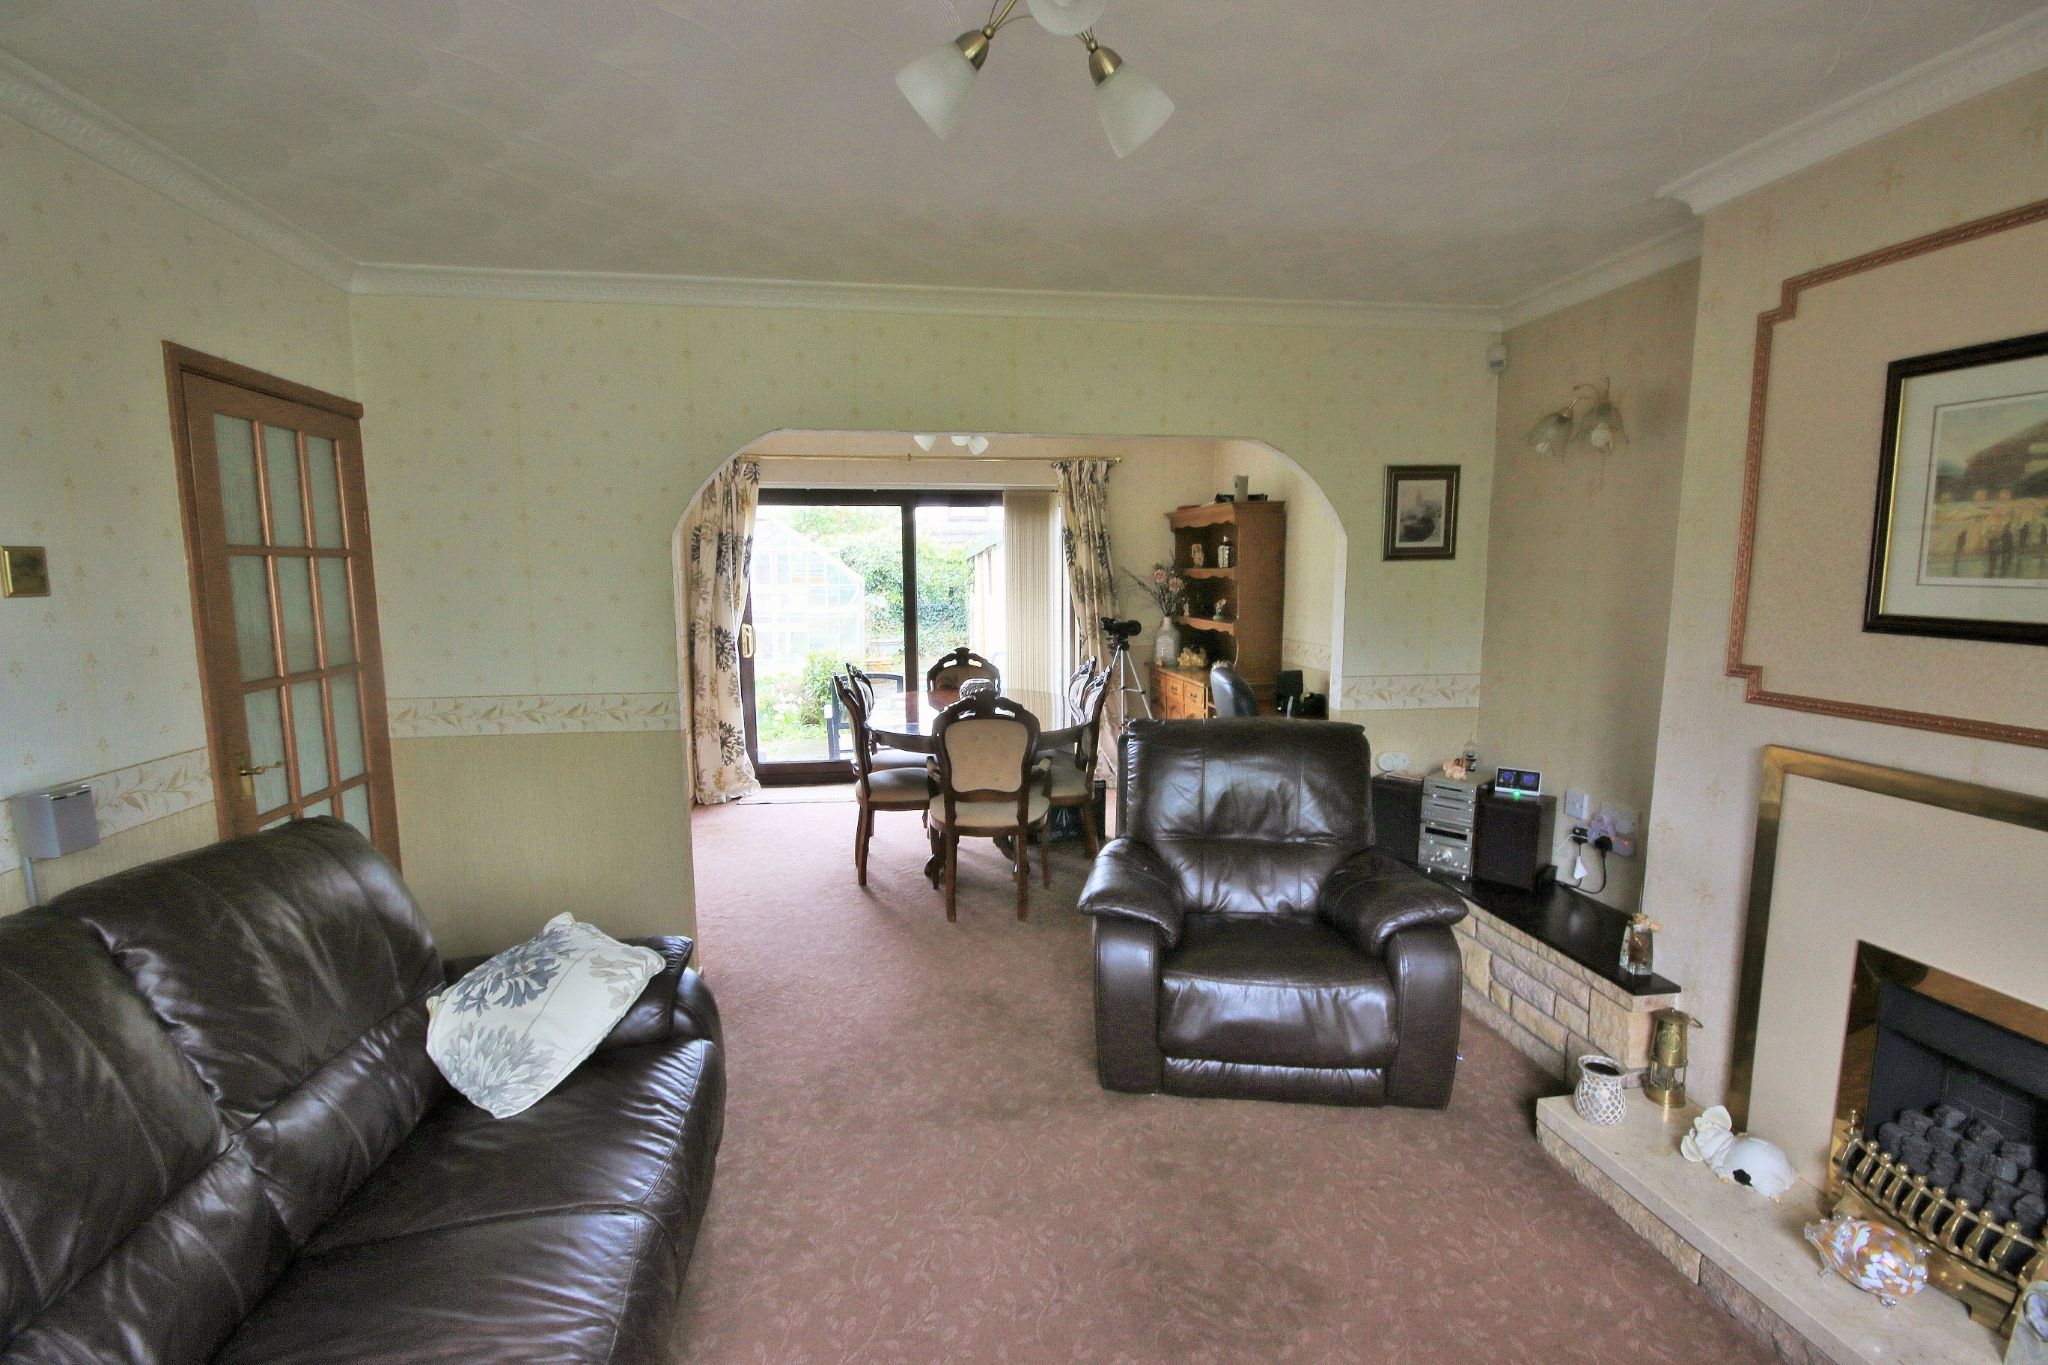 2 Bedroom Detached House For Sale - Photograph 3